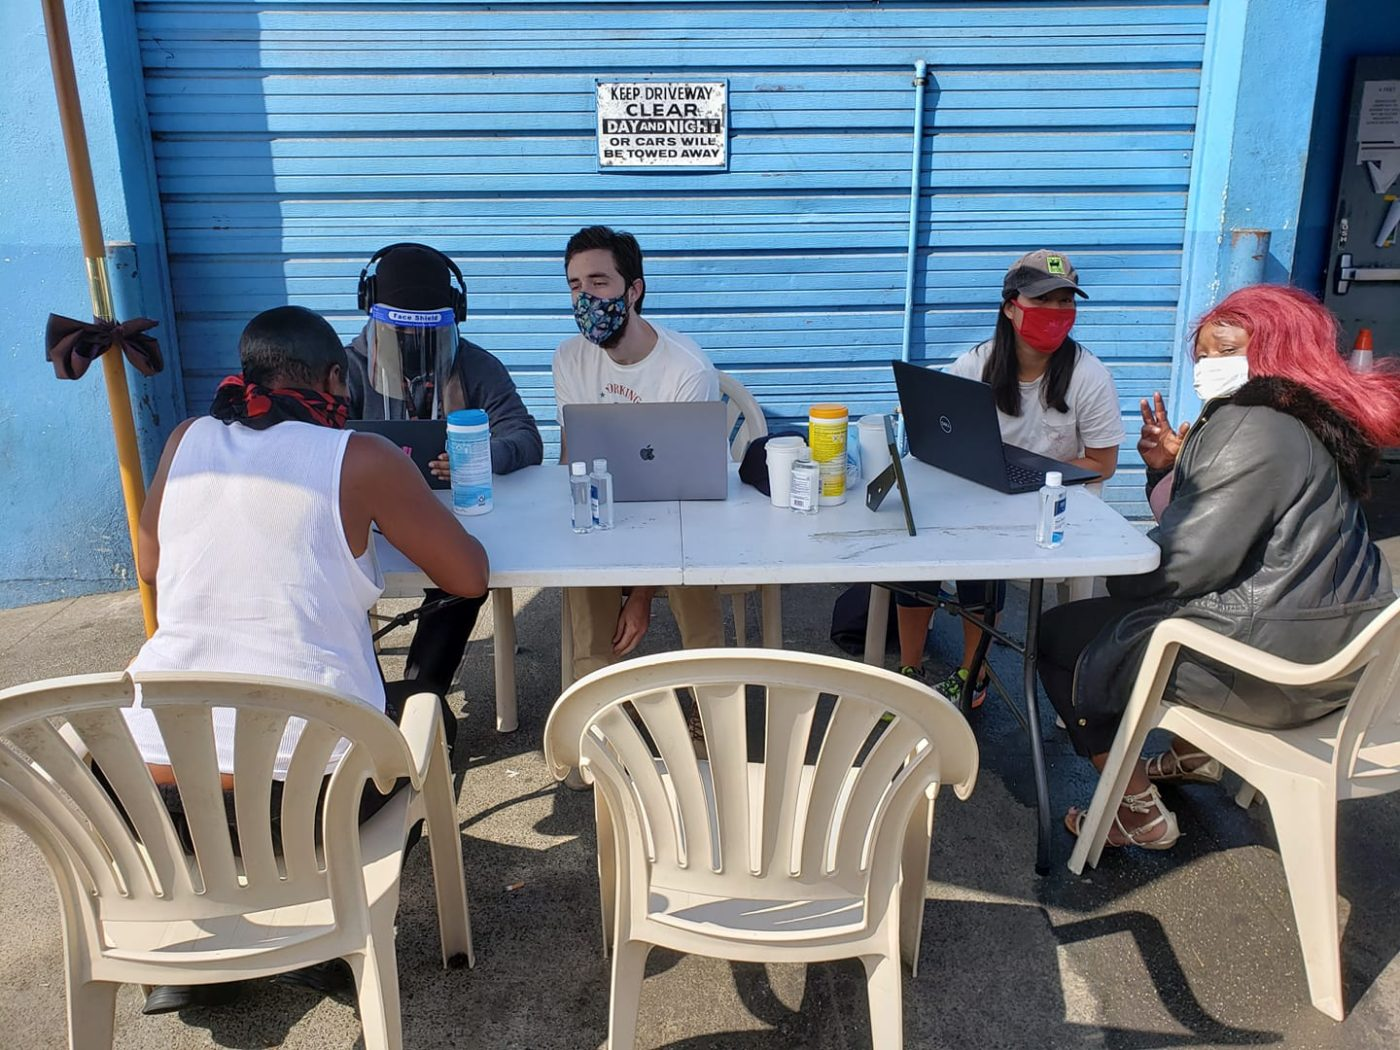 Debray-Carpenter-Fly-Benzo-team-help-ppl-get-stimulus-checks-outside-Mother-Browns-071820-1400x1050, Pop-up clinic to assist people in getting stimulus checks: Every Saturday in Hunters Point, Local News & Views